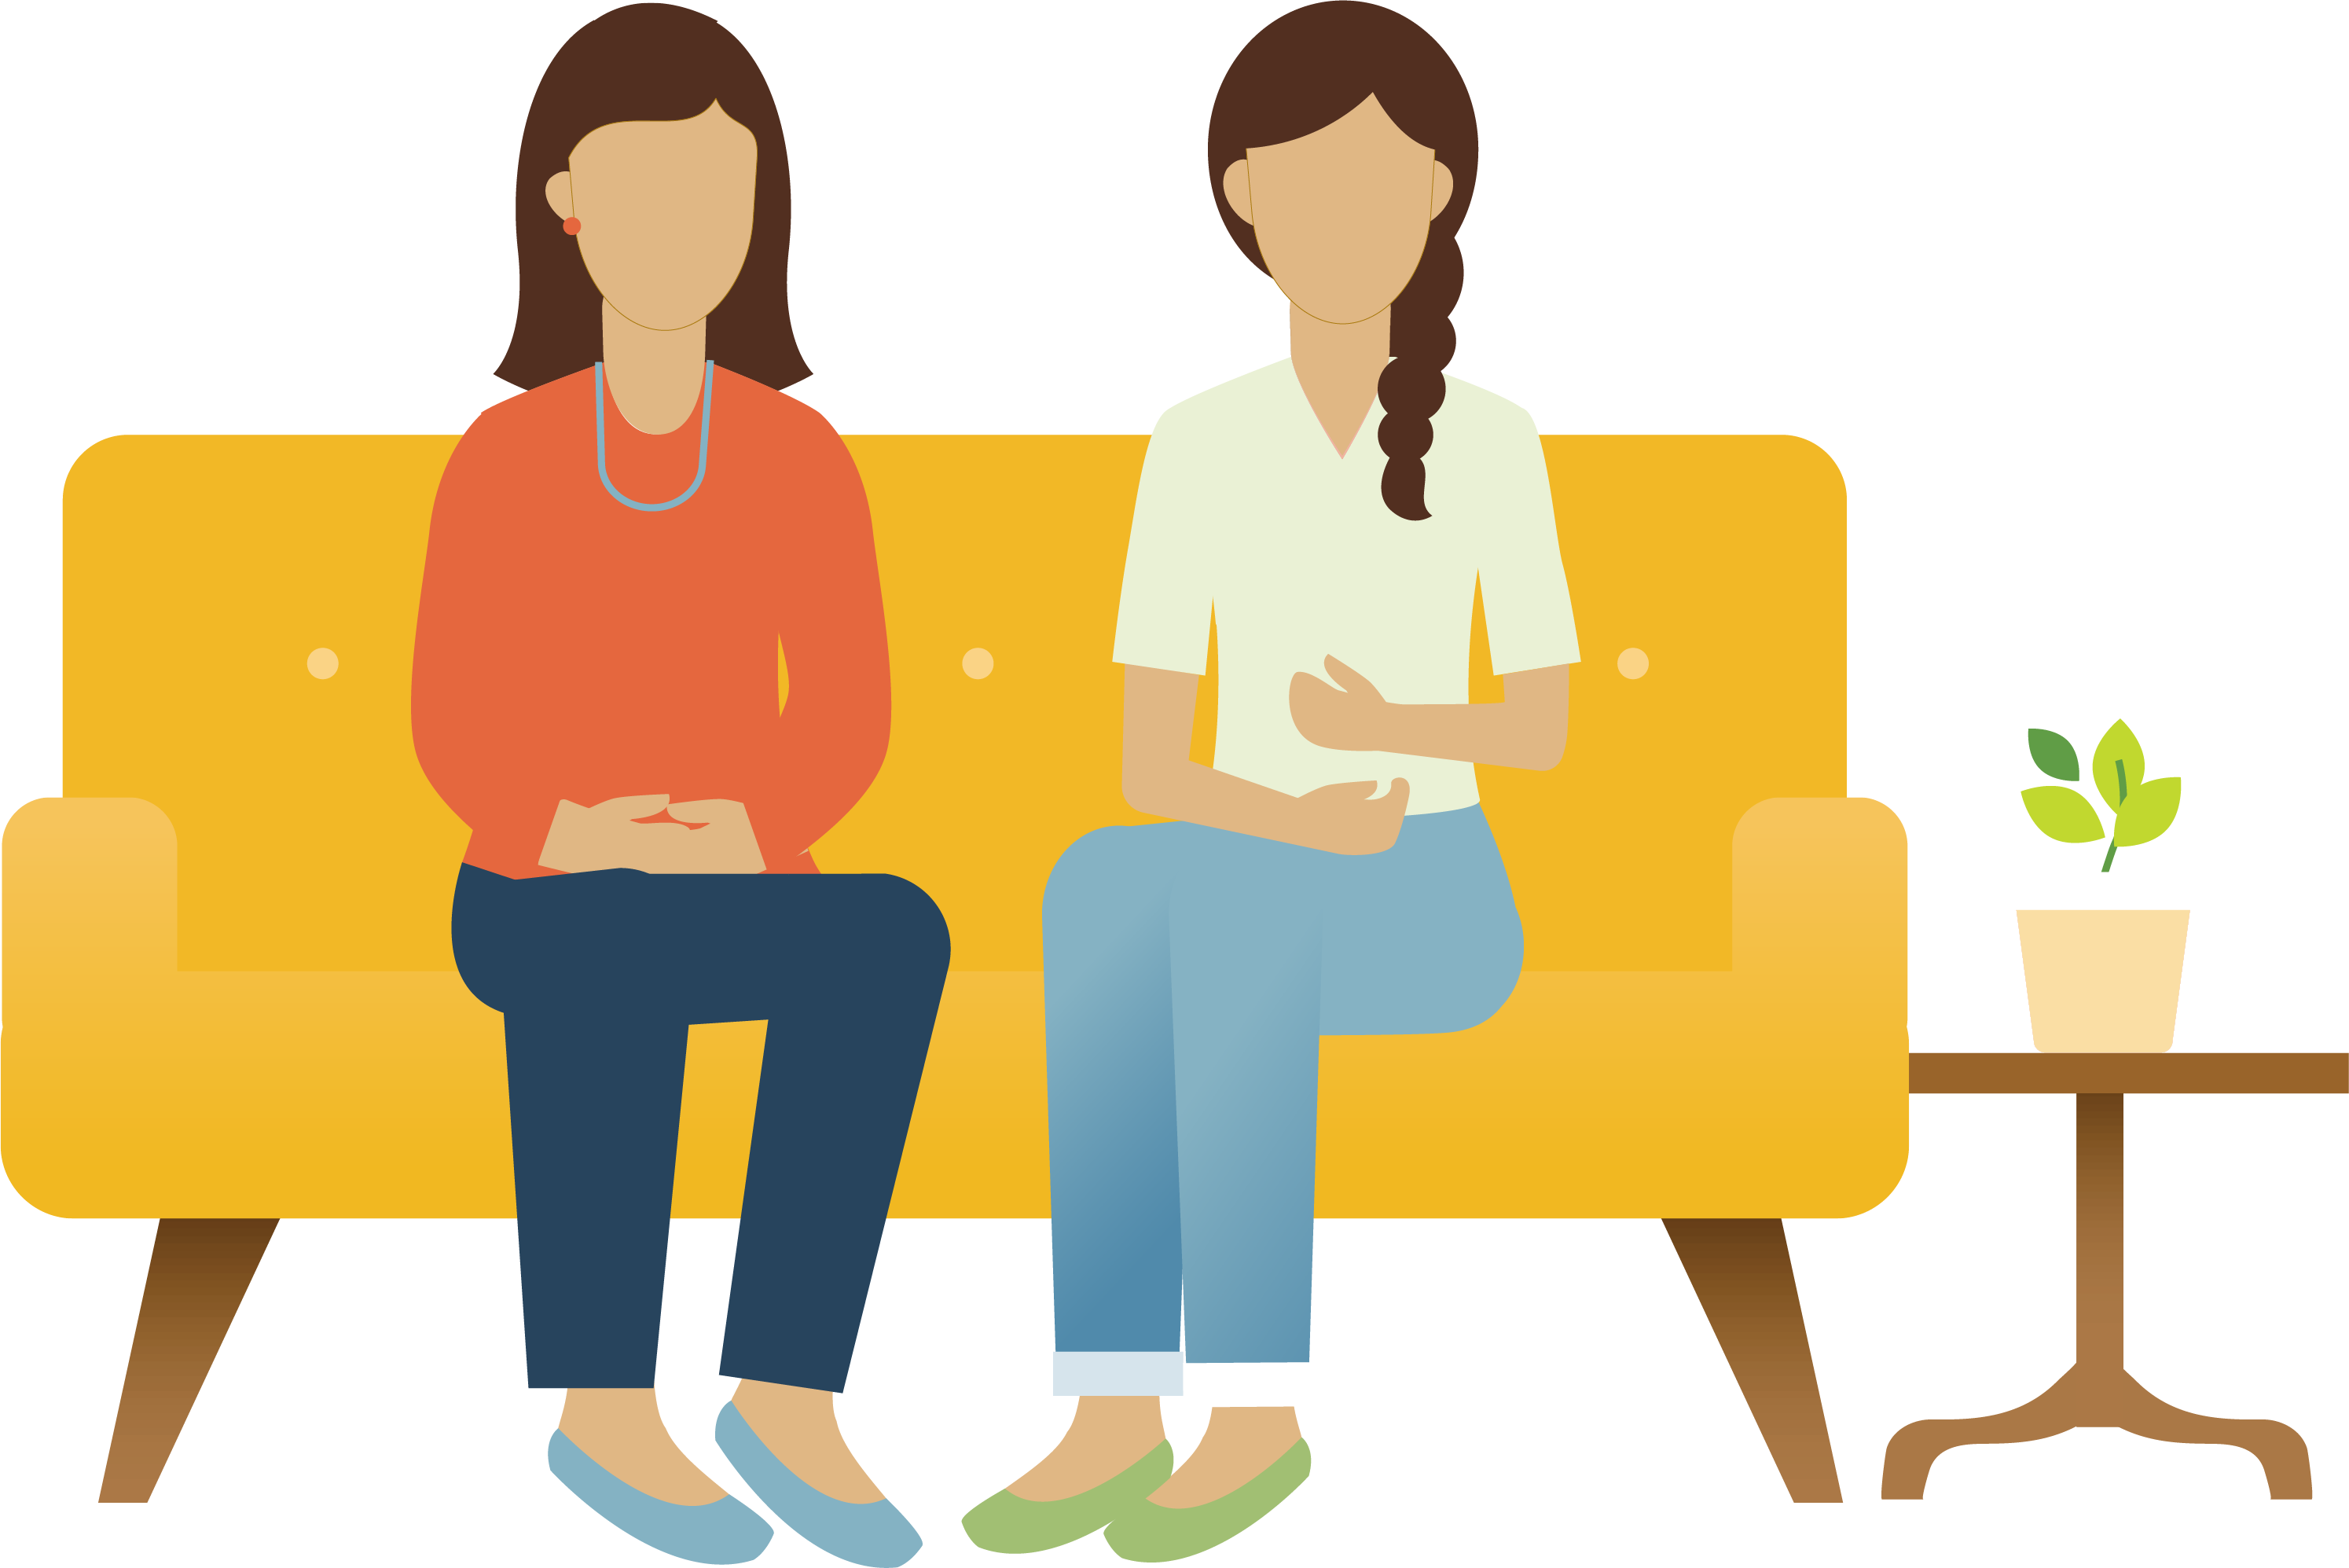 Image of two women on couch